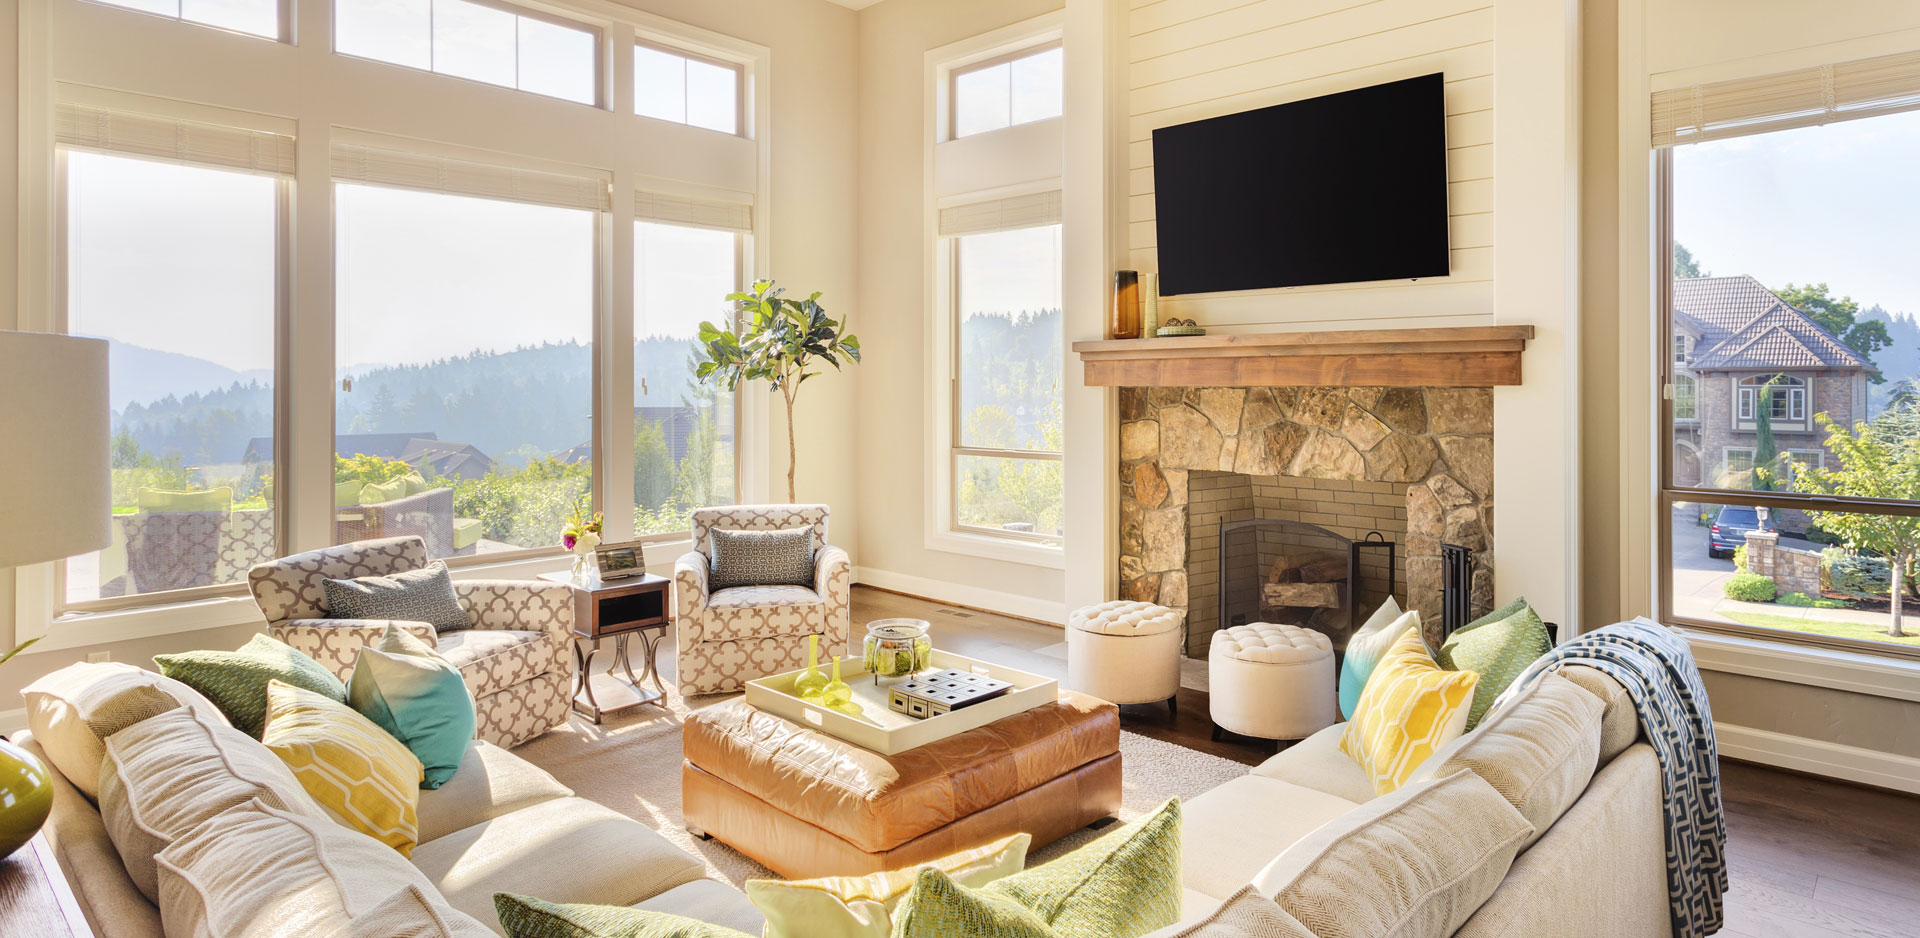 Country style living room with summer colors